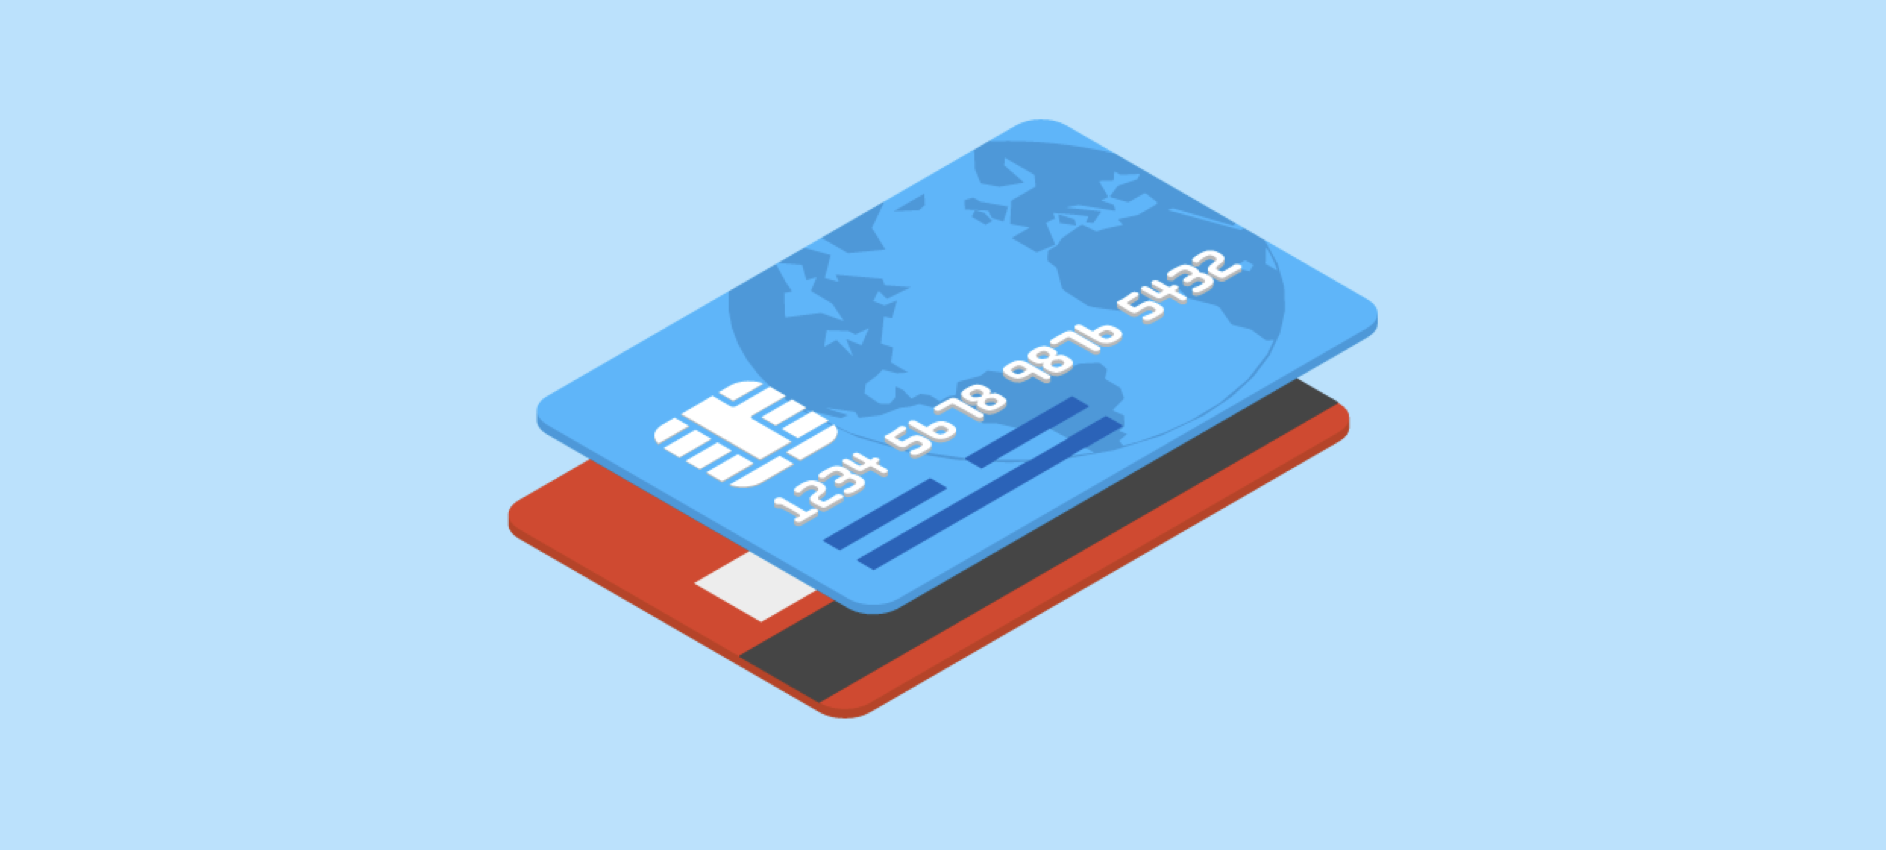 How to accept credit card payments on my website